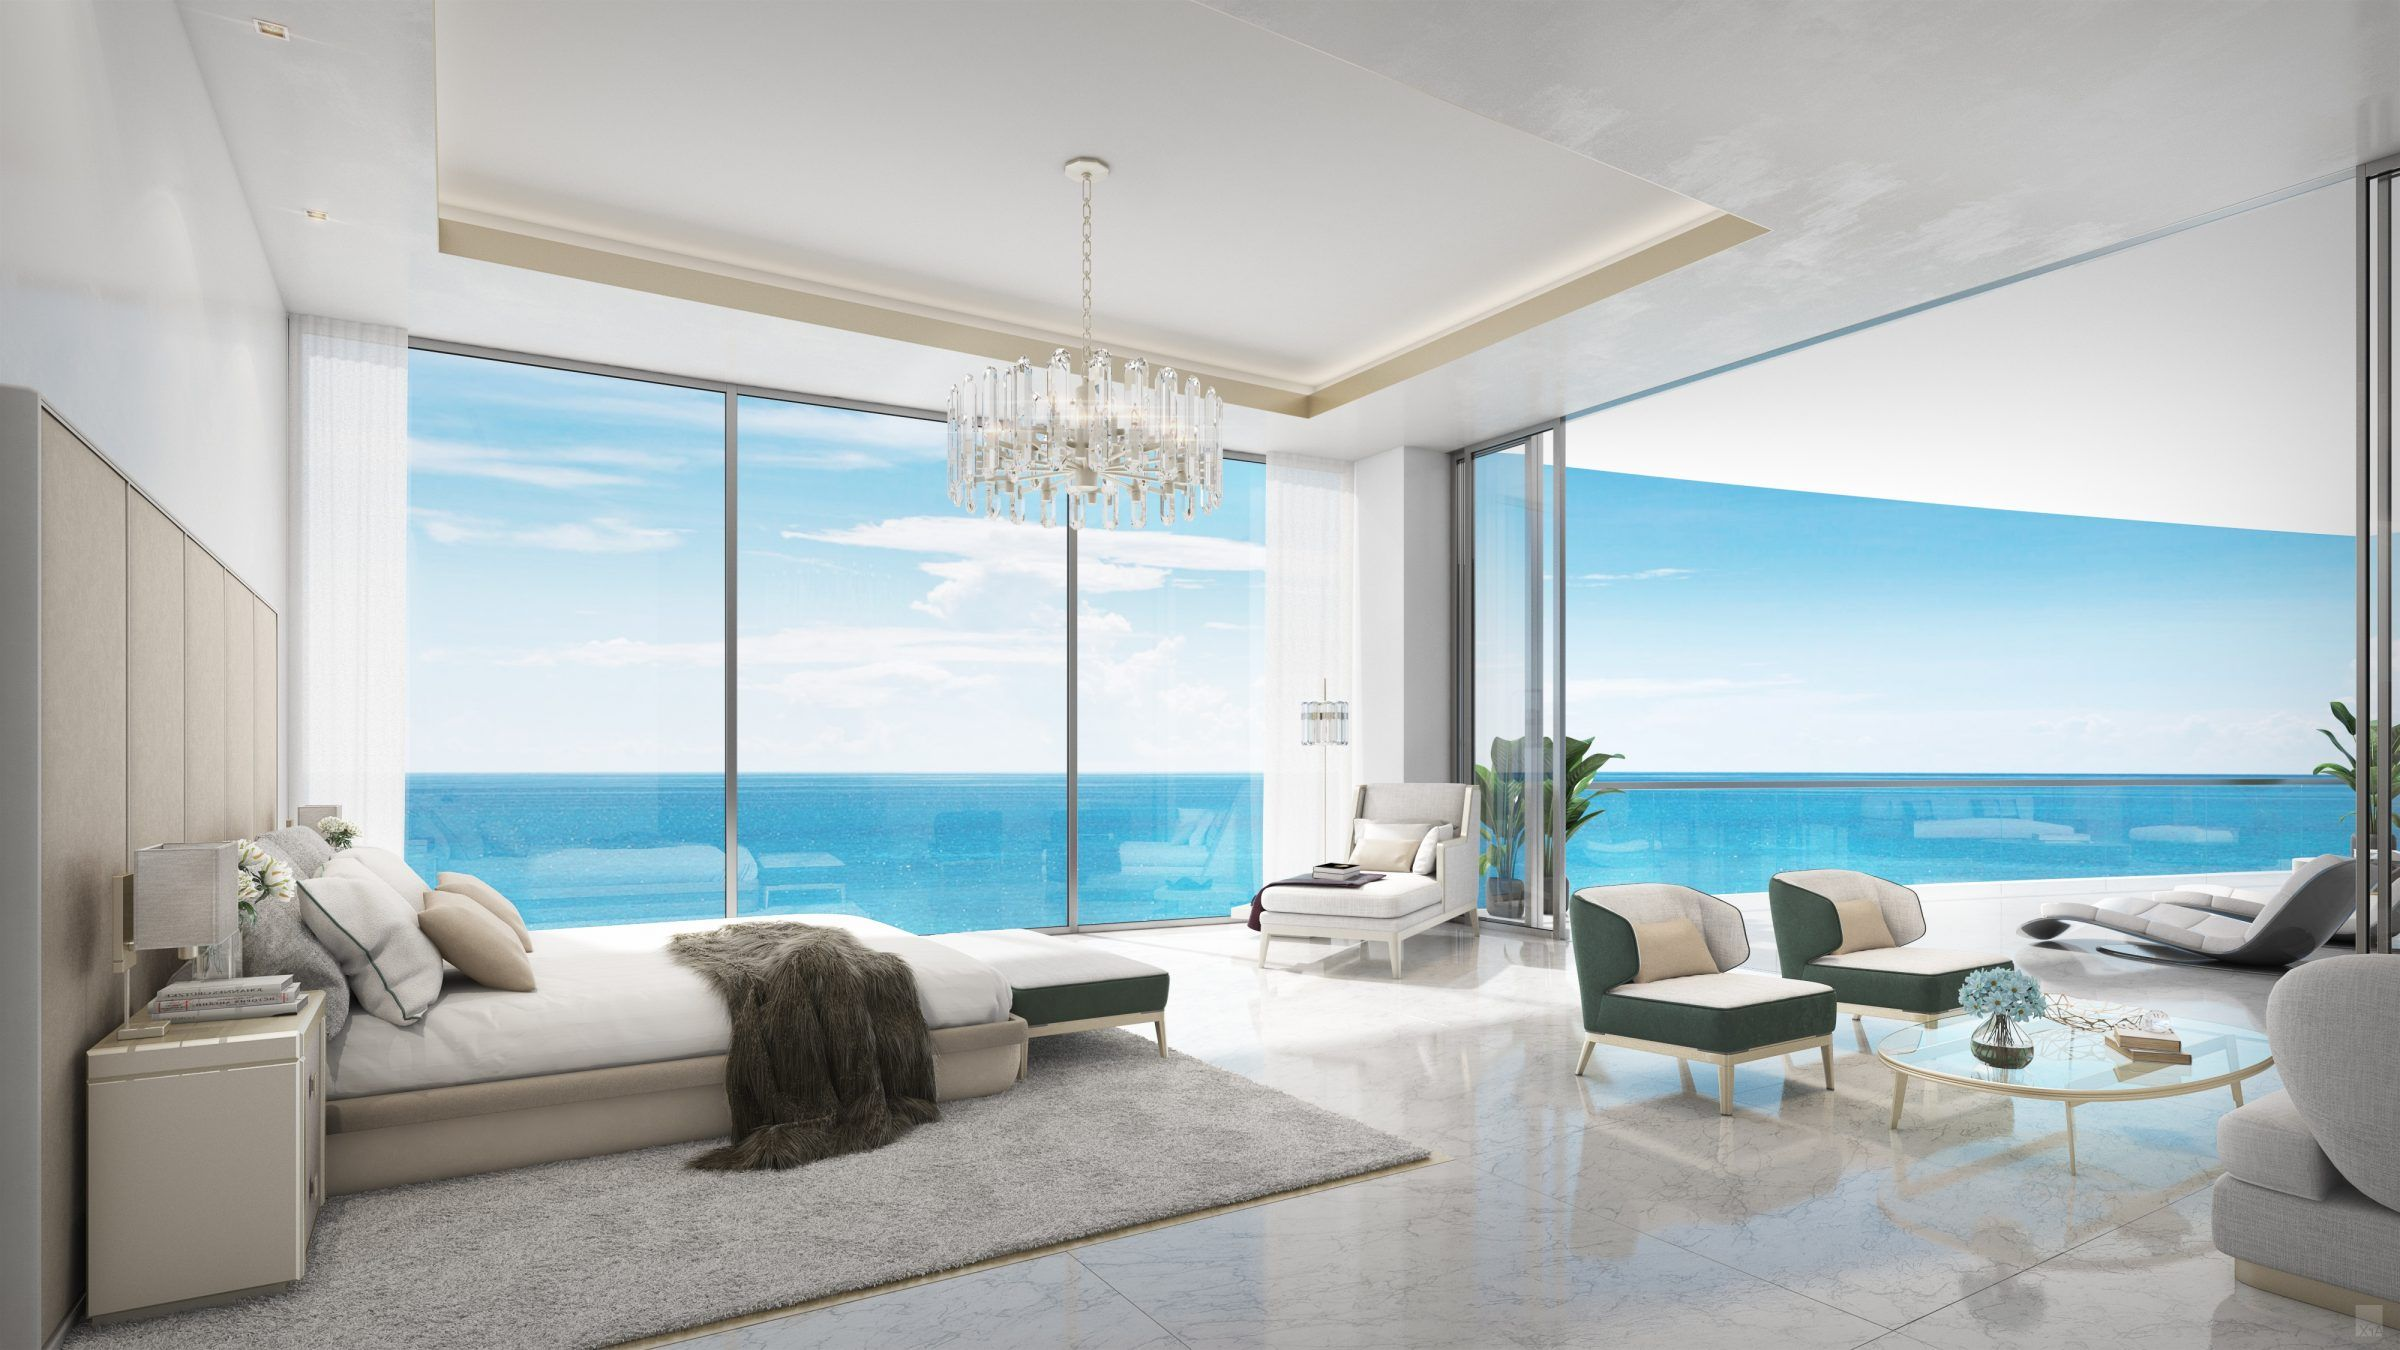 The Best Residences In The World At The Best Resort In The World Conceived As The Best Residences In The World With Images Luxury Real Estate My Dream Home Best Resorts